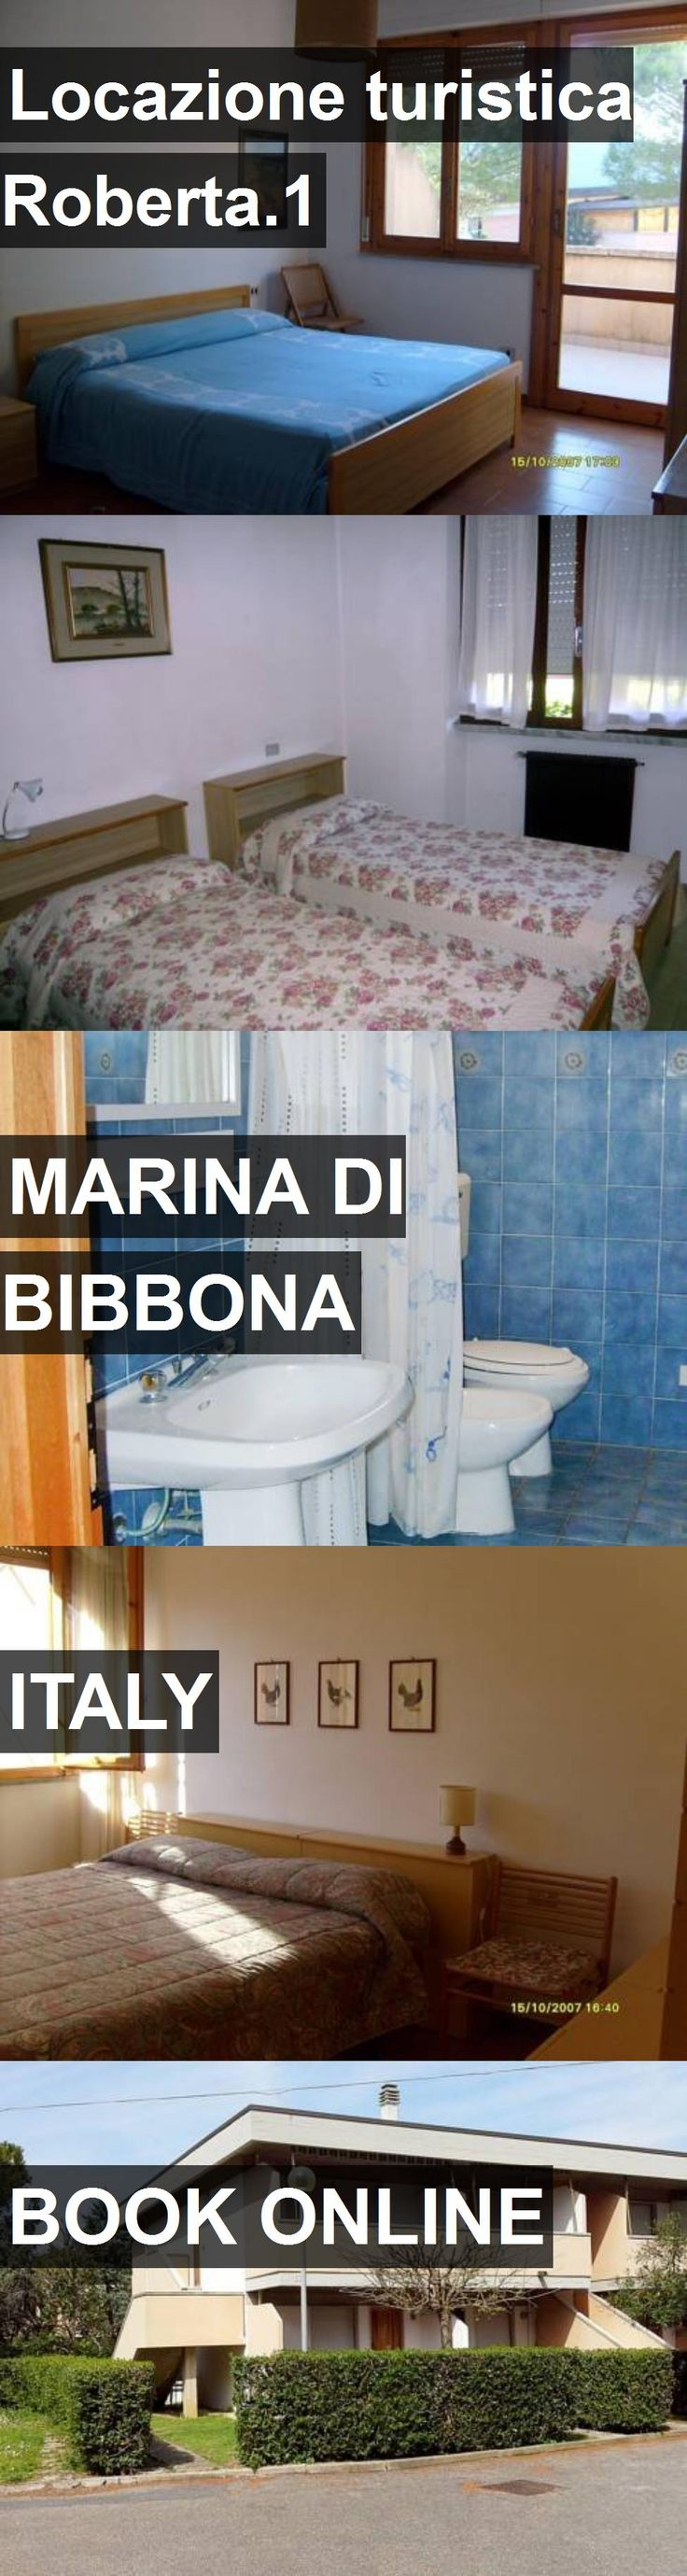 Hotel Locazione turistica Roberta.1 in Marina di Bibbona, Italy. For more information, photos, reviews and best prices please follow the link. #Italy #MarinadiBibbona #travel #vacation #hotel